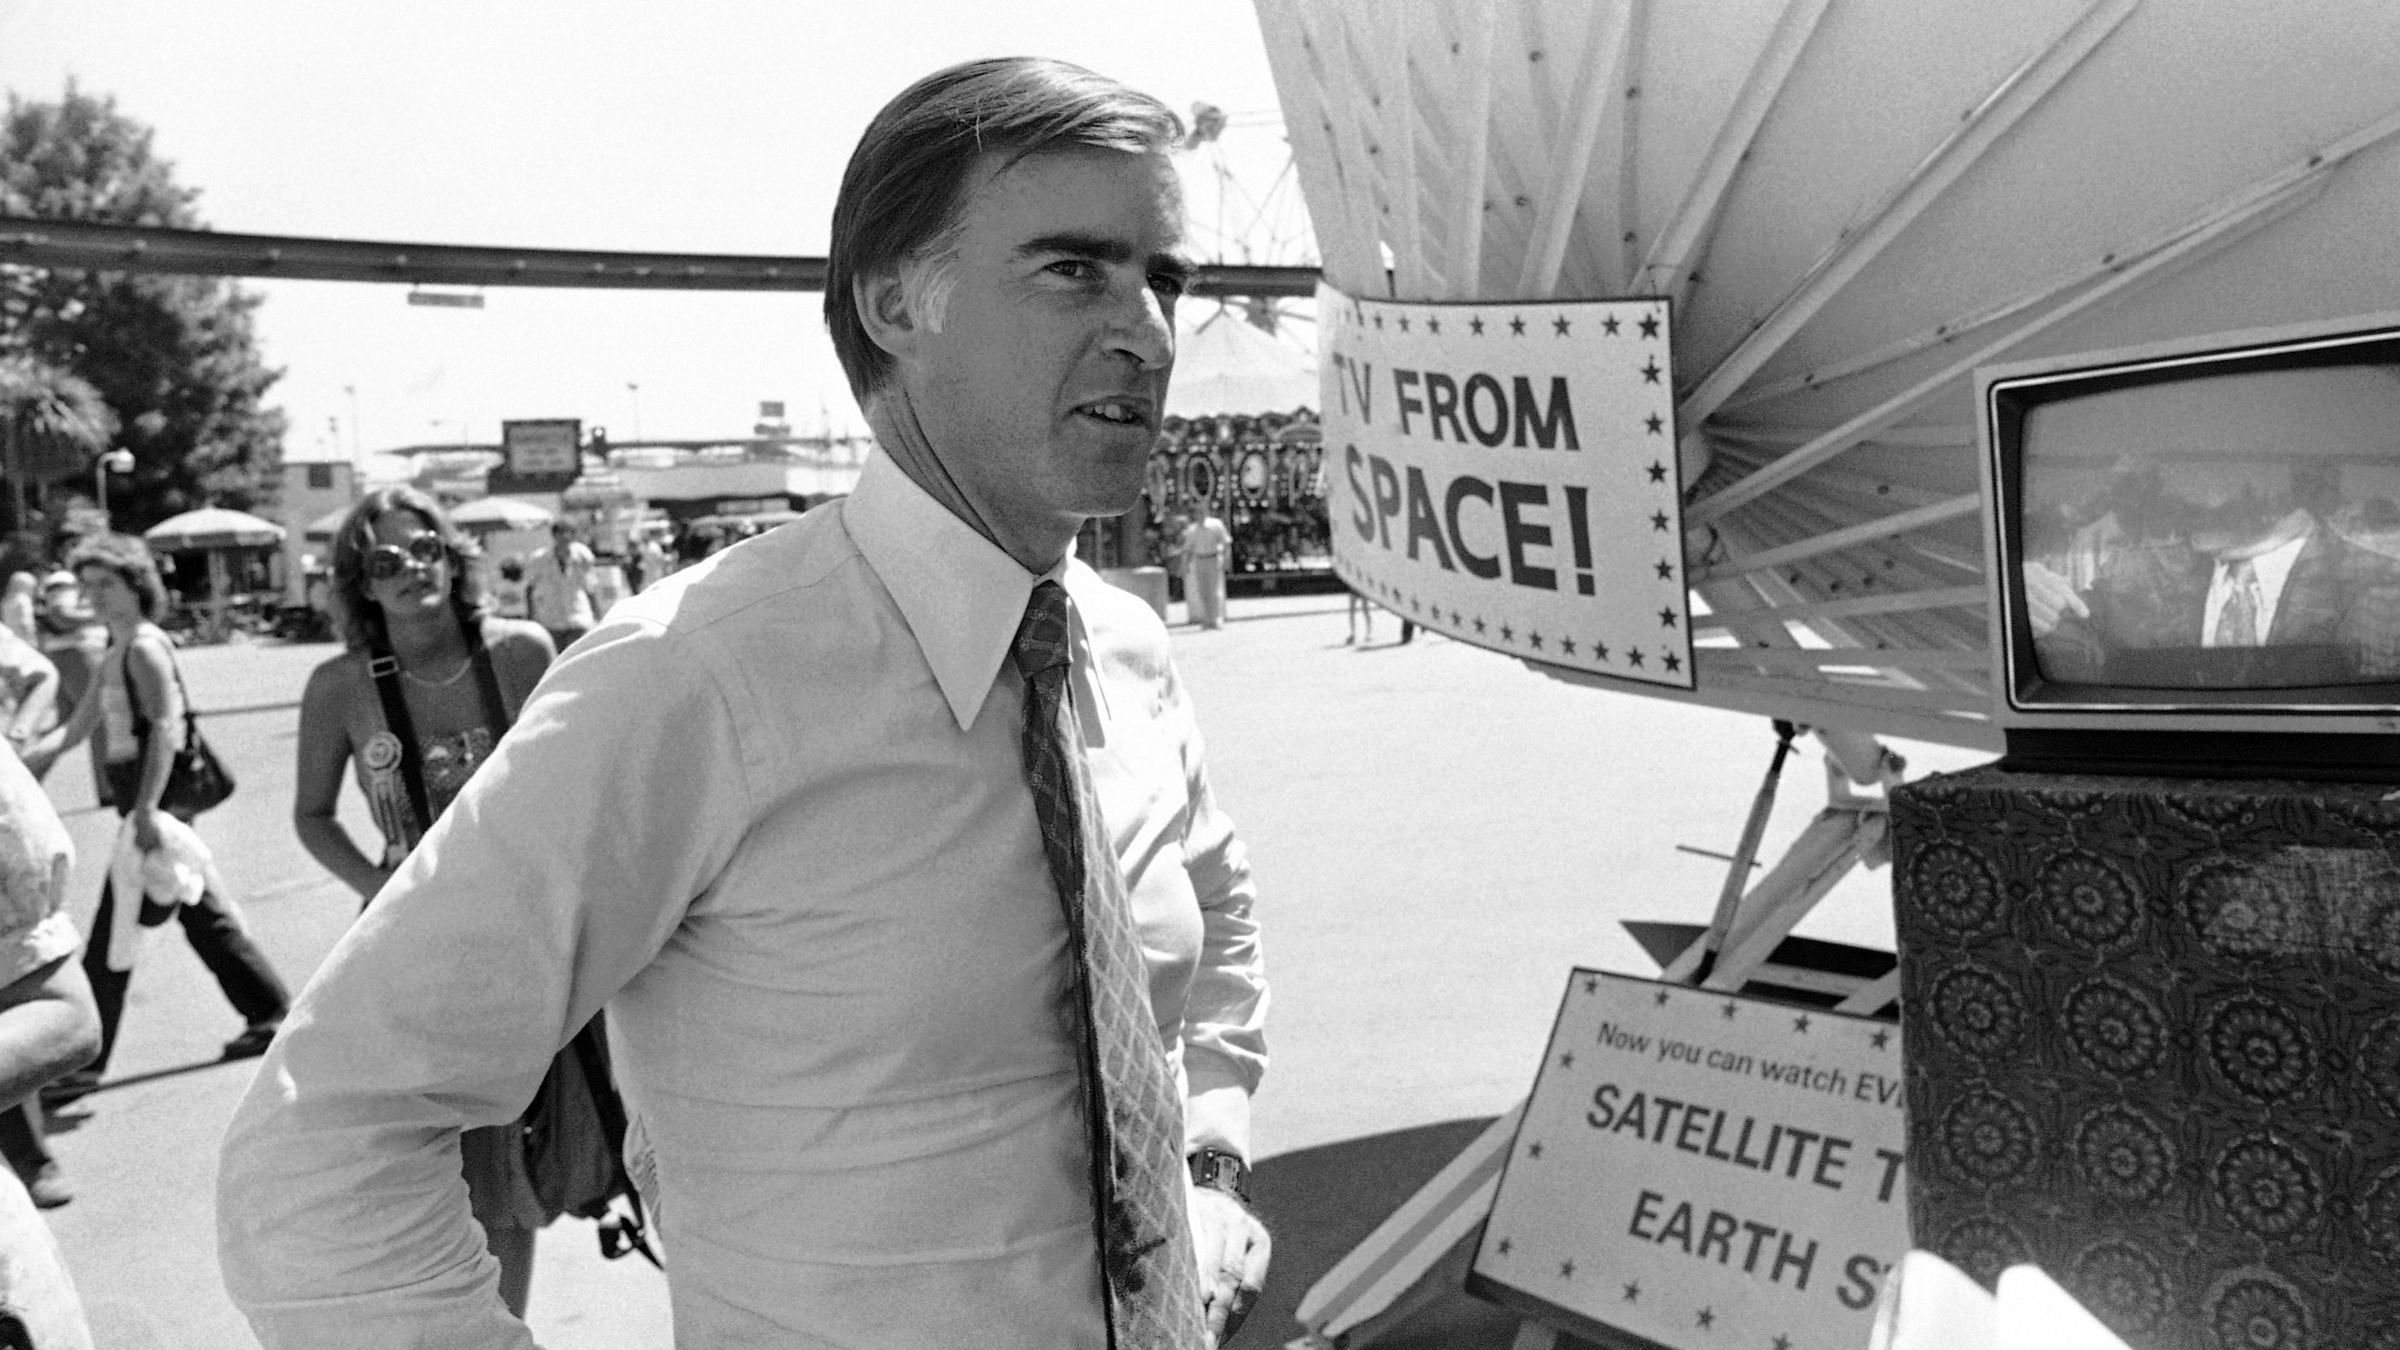 California Gov. Jerry Brown Jr. checked out a satellite dish for receiving television signals during a visit to the state fair in Sacramento, Calif., Aug. 30, 1981. The former Democratic presidential candidate is still considered a significant political force in California.